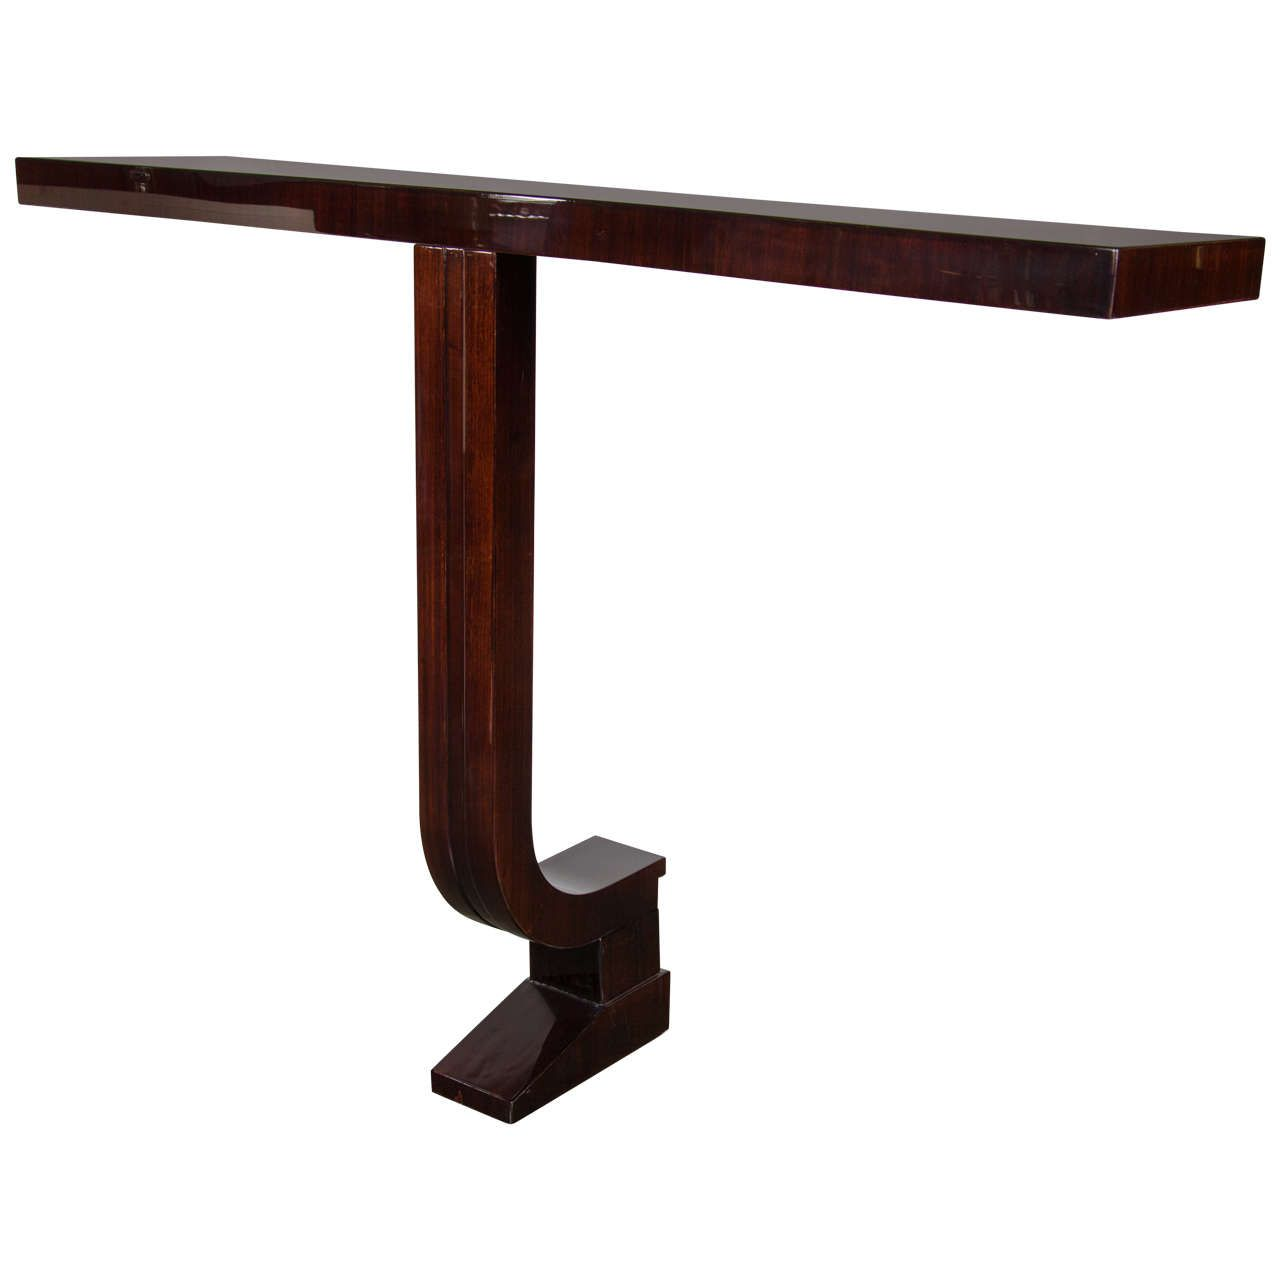 Exquisite Streamlined Art Deco Wall Mounted Console in Mahogany